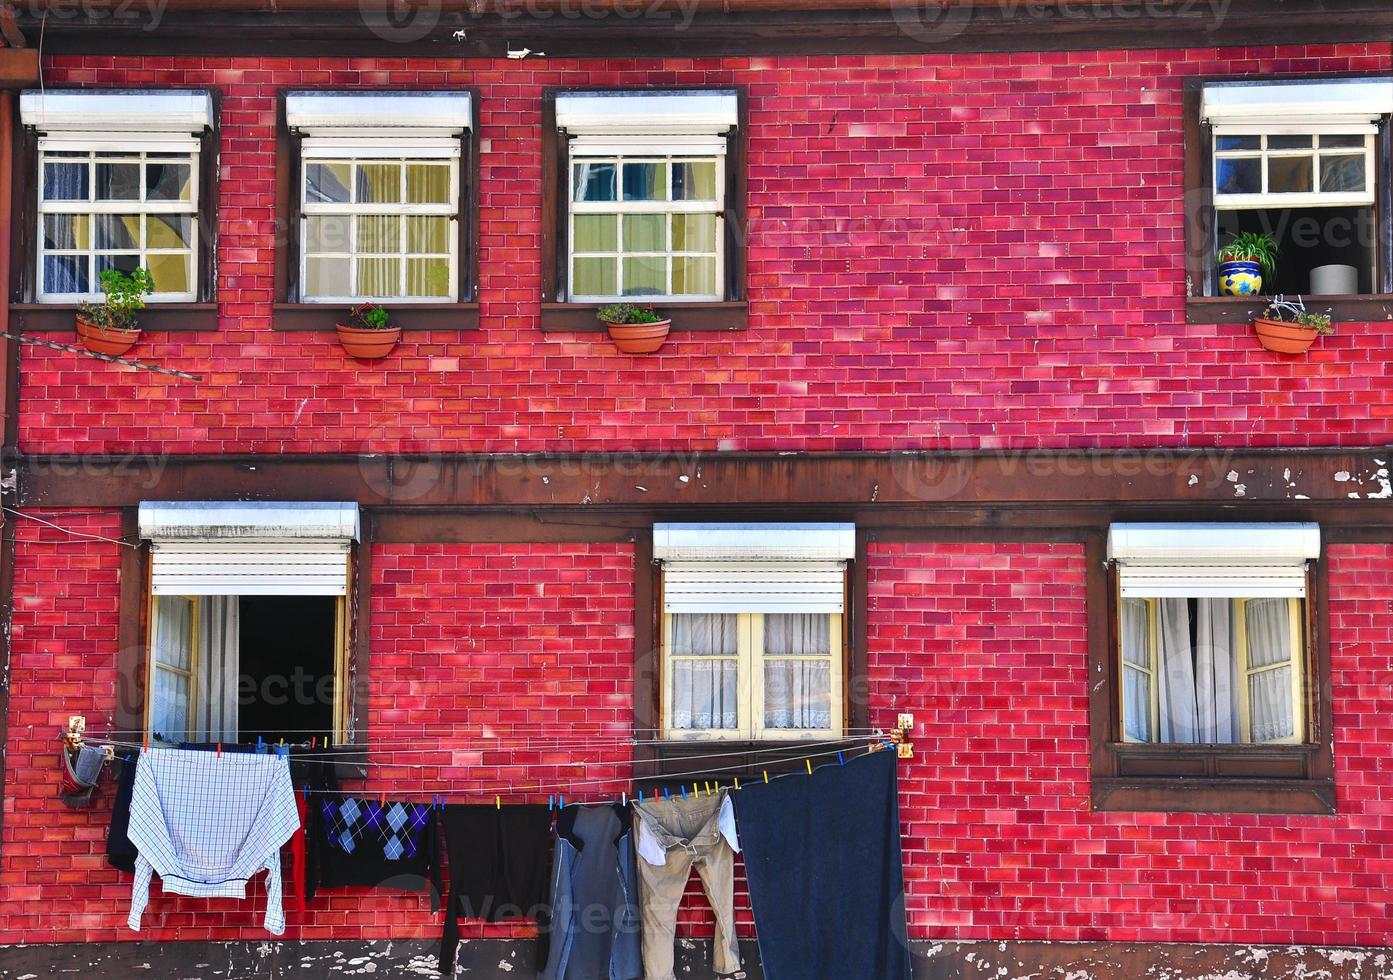 Old colorful house with tiled walls photo